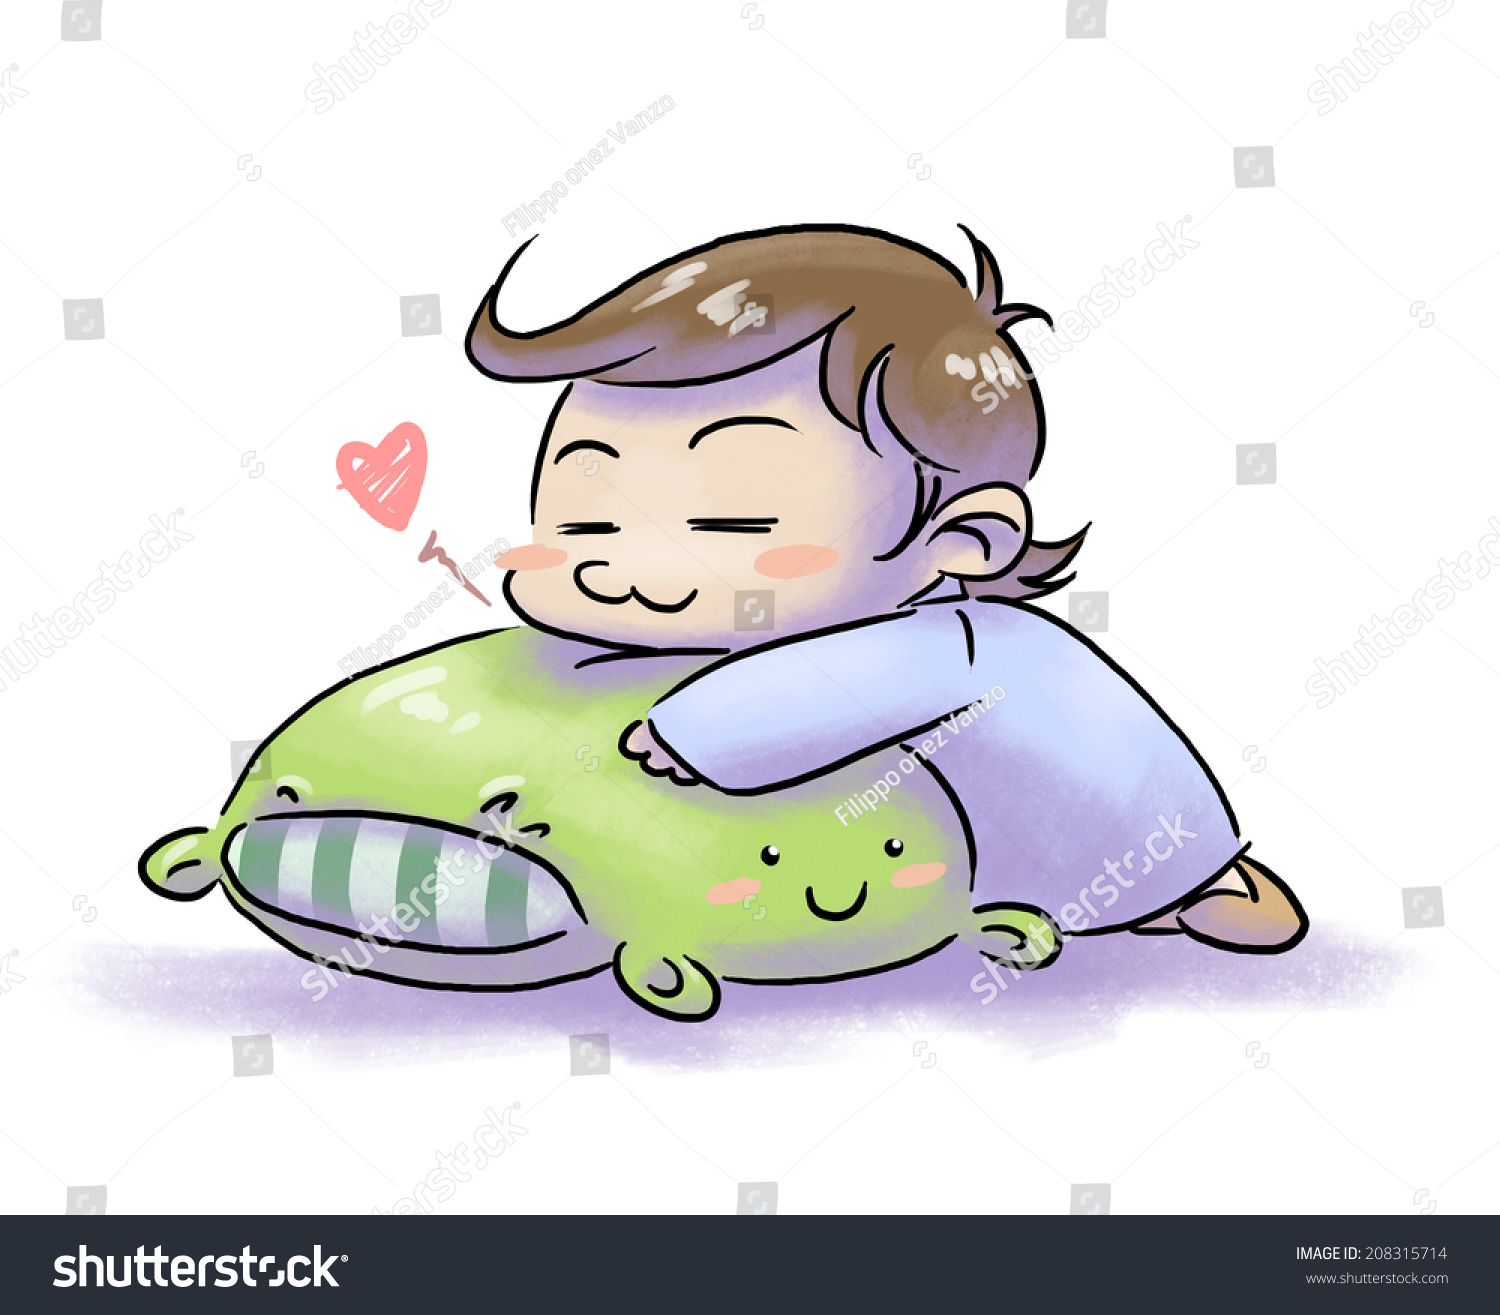 cute pillow clipart. cute happy child sleeping on a pillow with face - white background clipart